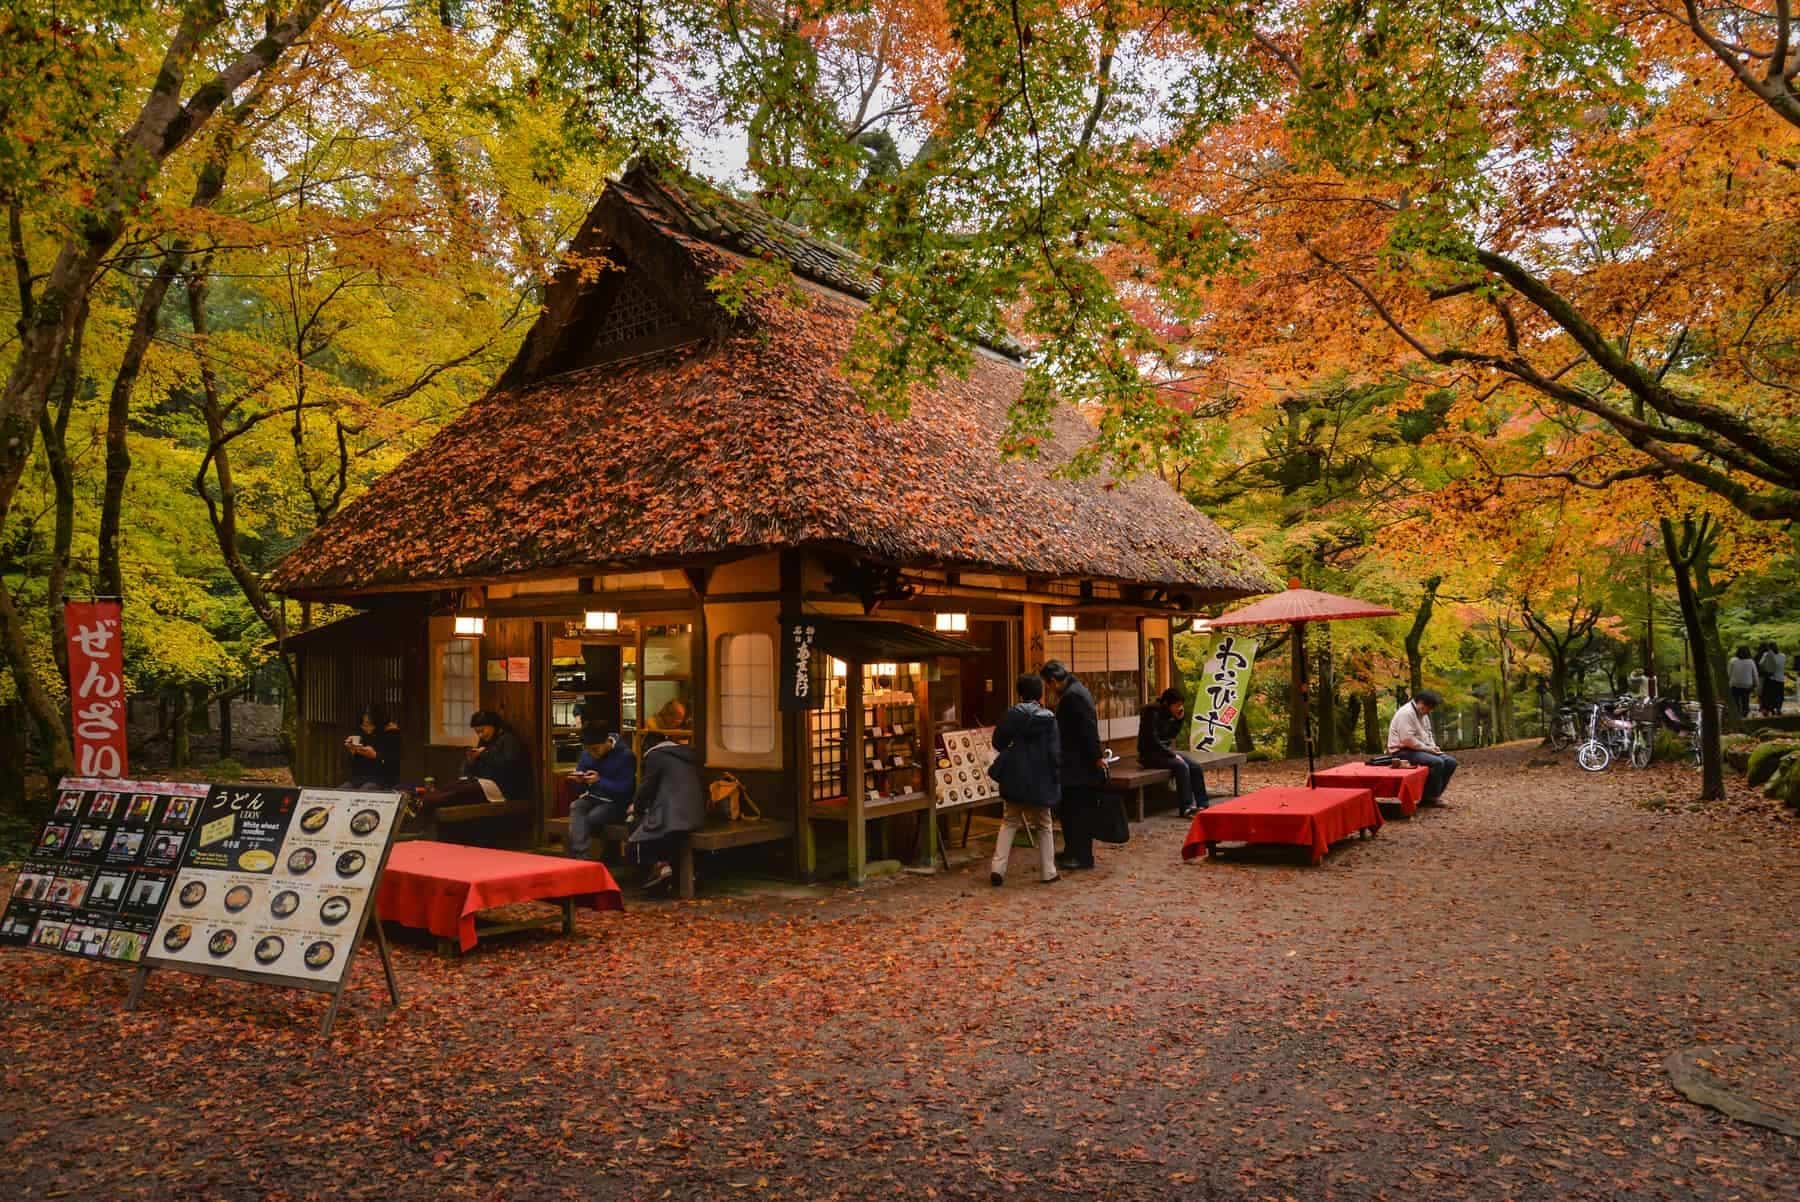 Nara, Japan - November 21,2016: Tourists are taking a rest, having some food and tea at traditional style teahouse after a walk in Nara Park, Nara, Japan